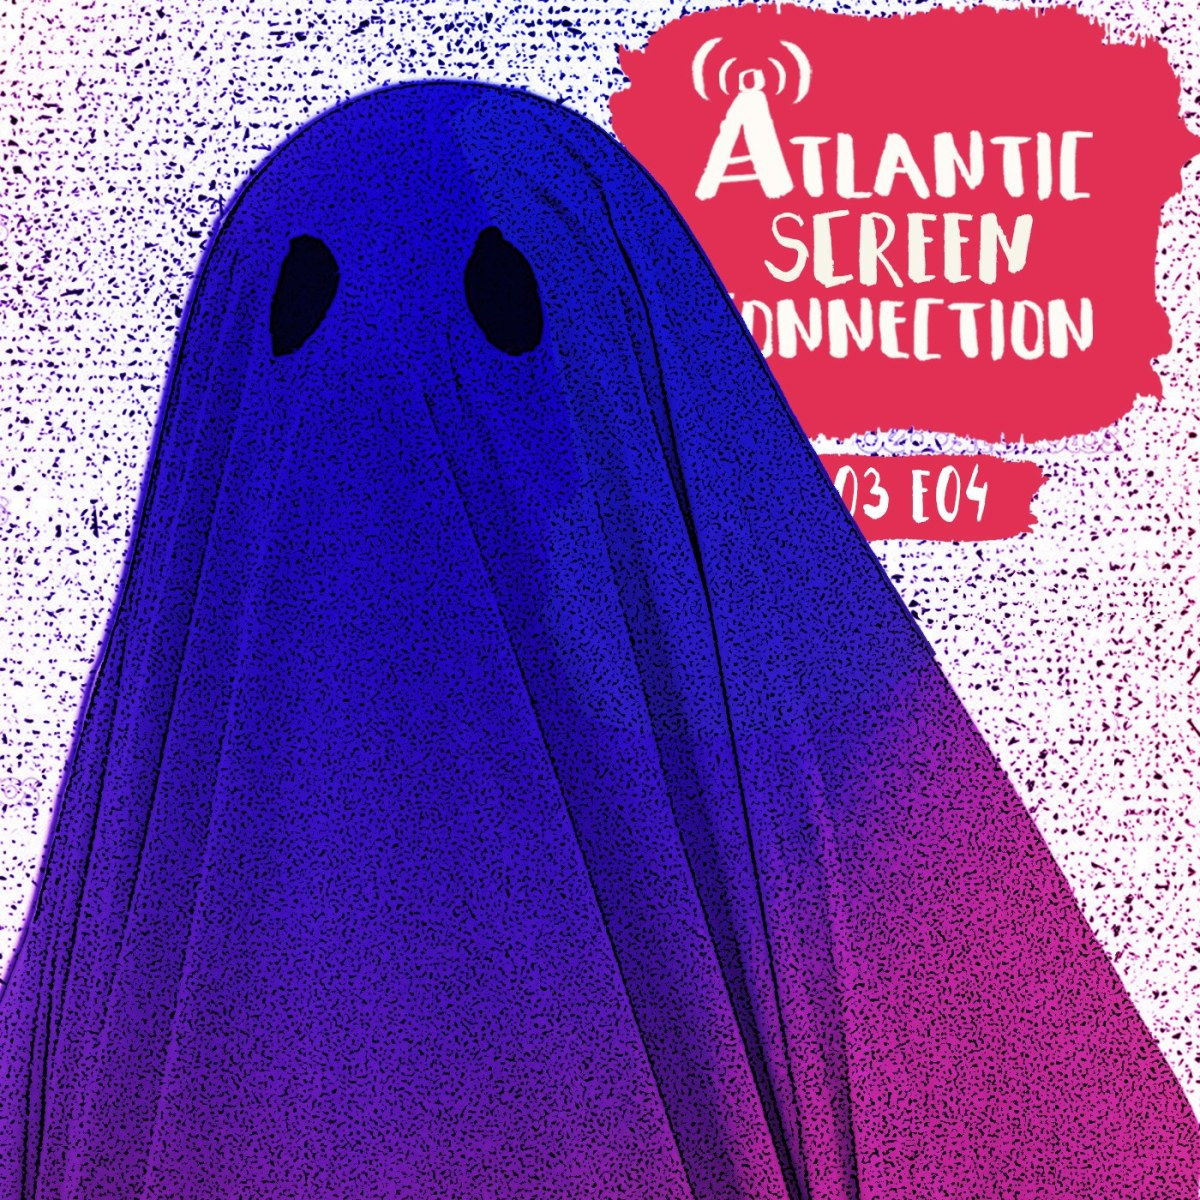 PODCAST: A GHOST STORY (S03E04)